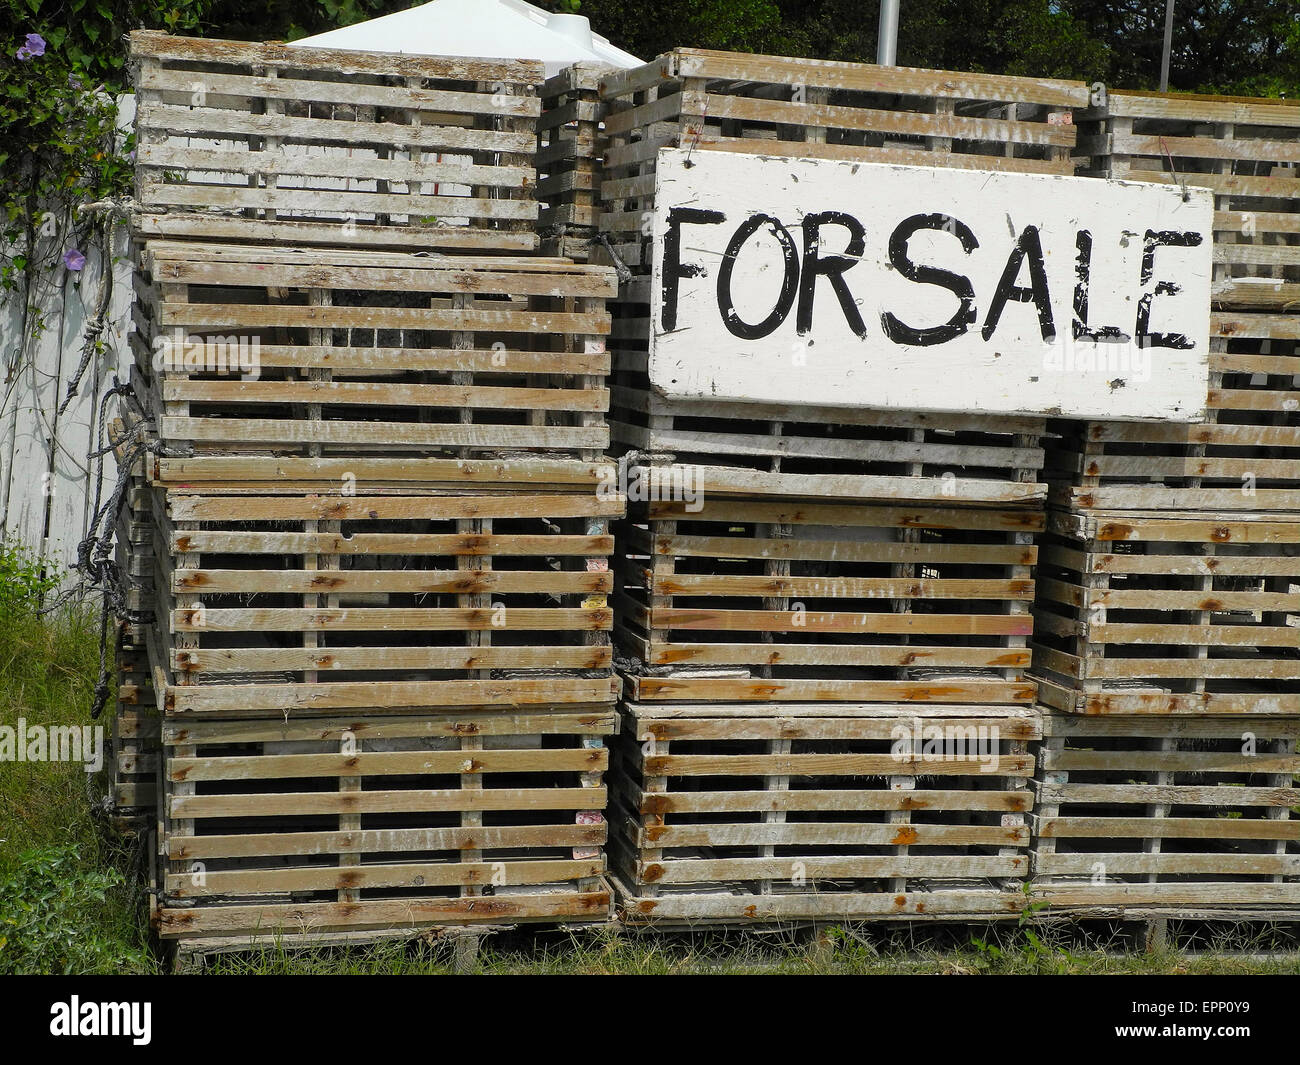 Traps For Sale The old lobster traps are for sale and buyers lately Stock Photo, Royalty Free ...